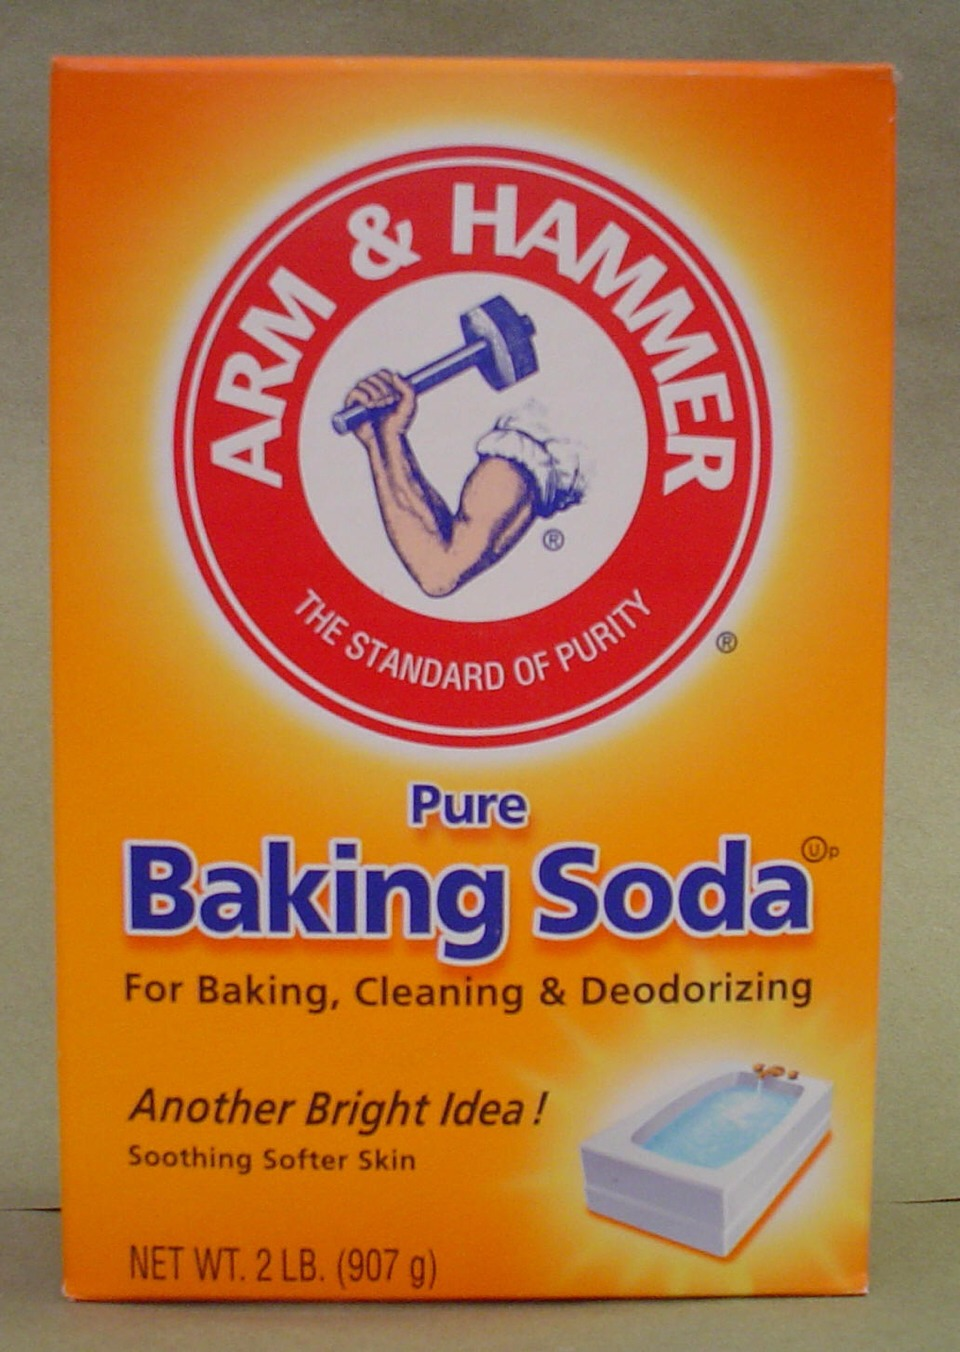 Add a small amount of water to 2Tbs baking soda to make a paste. Place on areas with blackheads. Allow to dry for 7-10 minutes. Rinse, cover fingers with cotton or tissue and gently squeeze out blackheads. Follow with a toner and moisturizer. NOT FOR DRy SKIN!